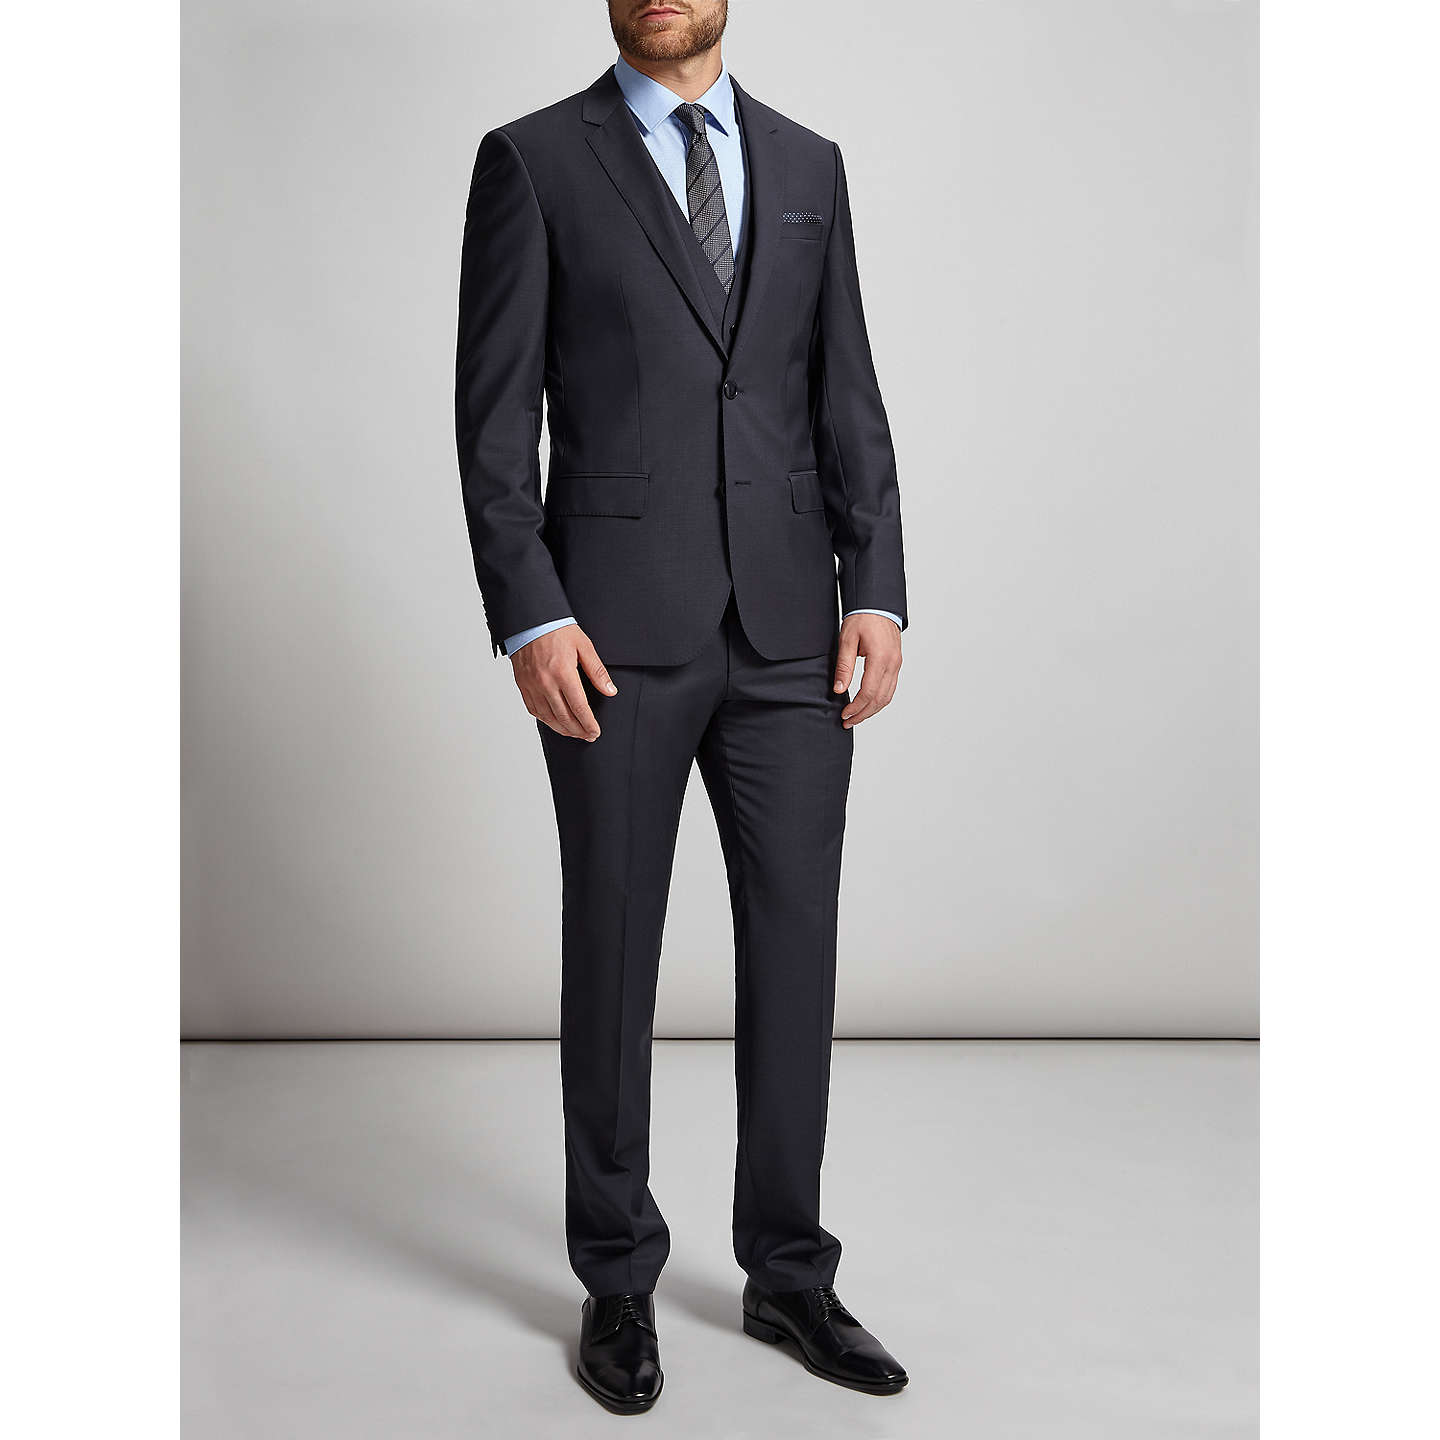 BuyHUGO by Hugo Boss Huge/Genius Virgin Wool Slim Fit Suit Trousers, Dark Blue, 30R Online at johnlewis.com